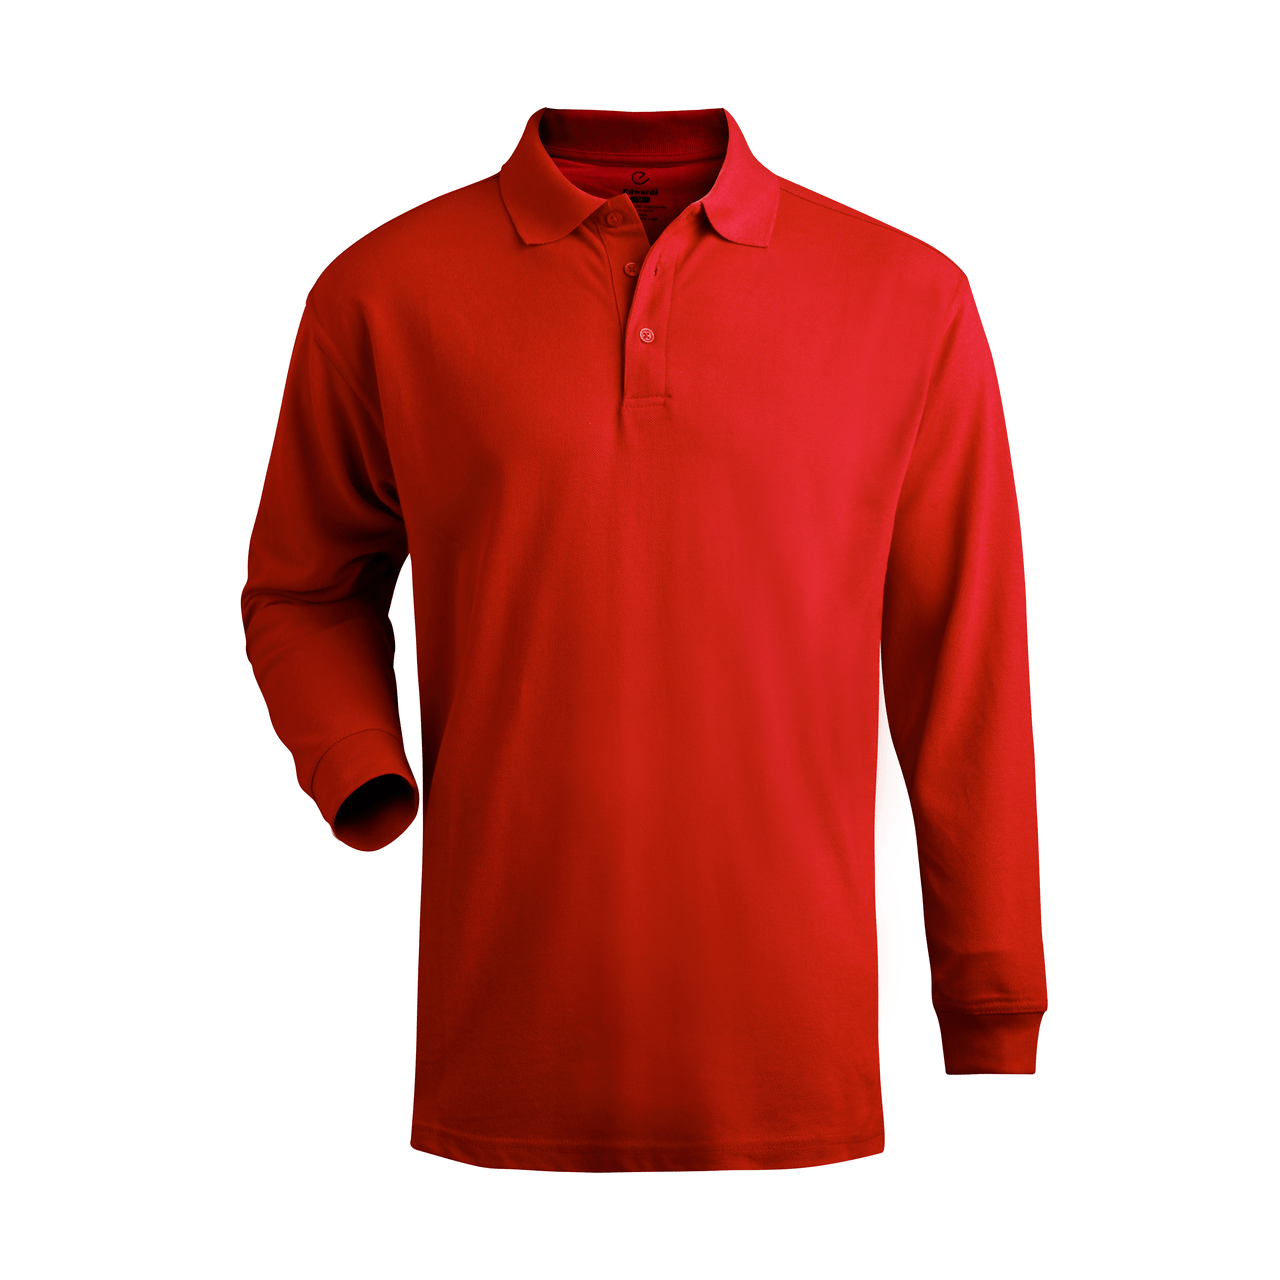 Long Sleeve Soft Touch Pique Polo Shirt